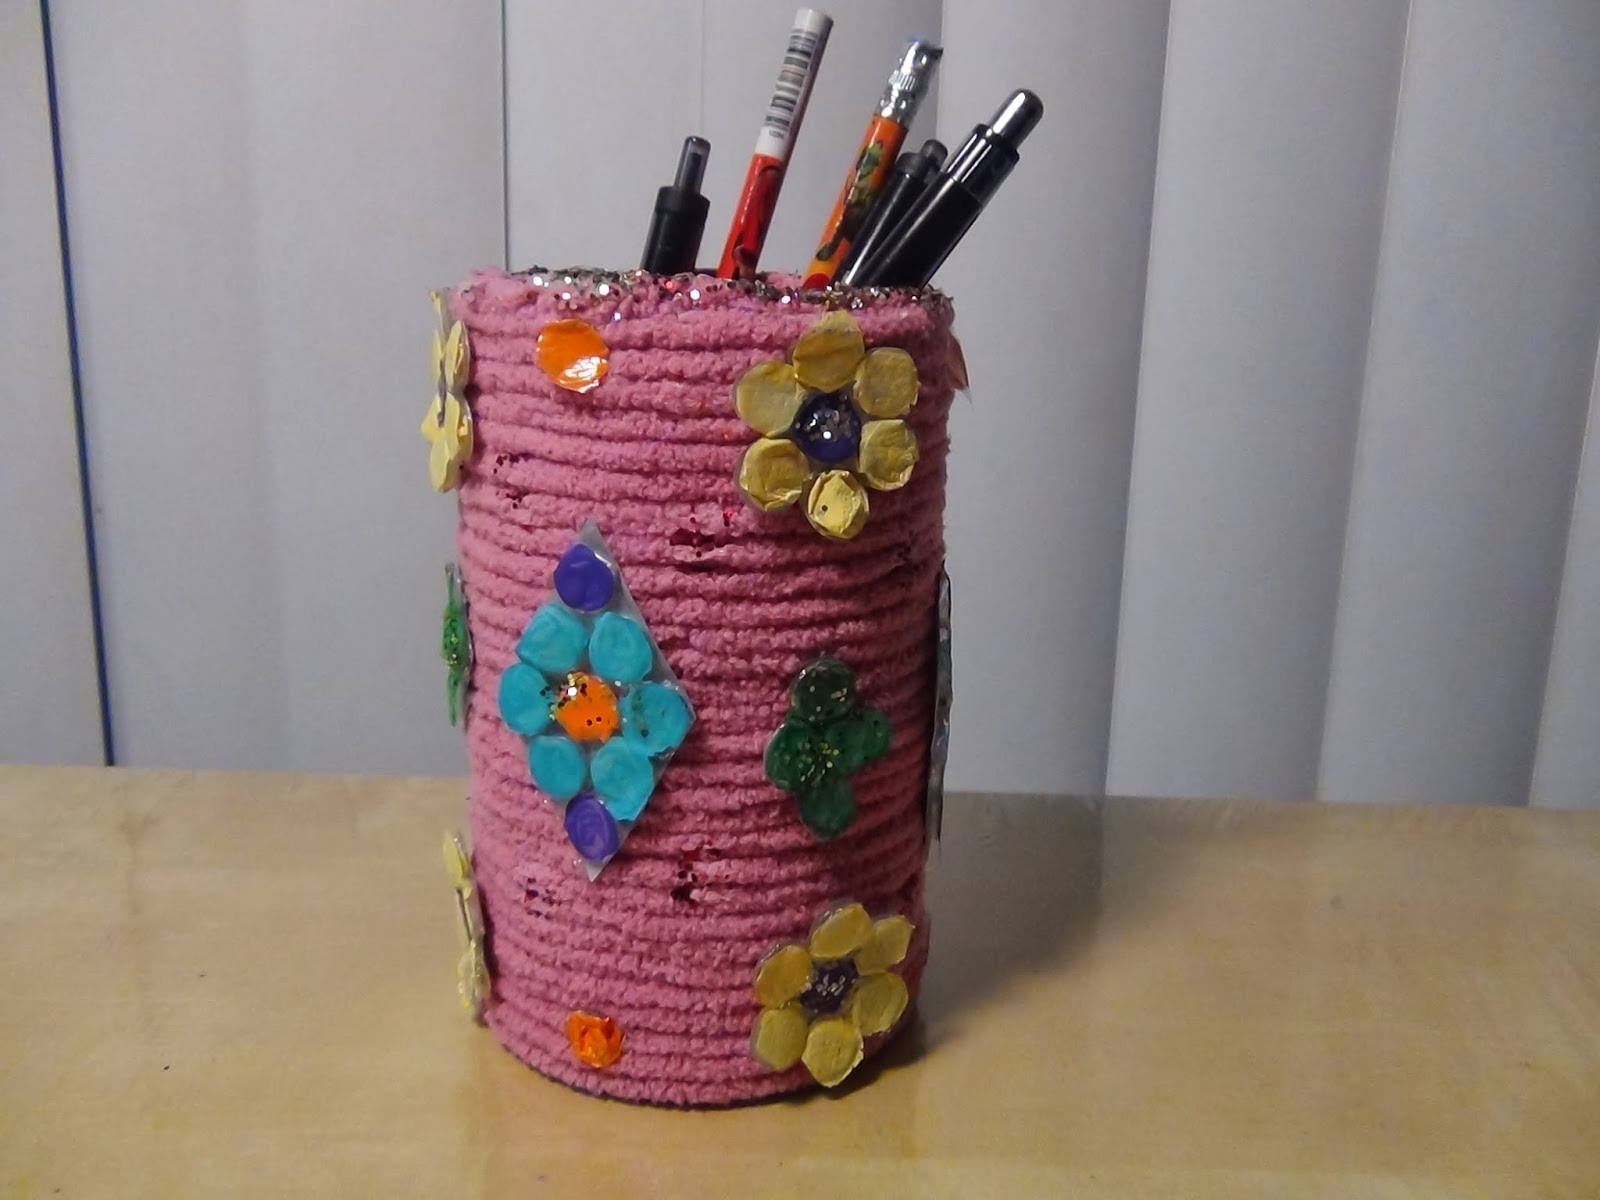 Creative diy crafts diy pen spoon or brush holder with for Waste to useful crafts